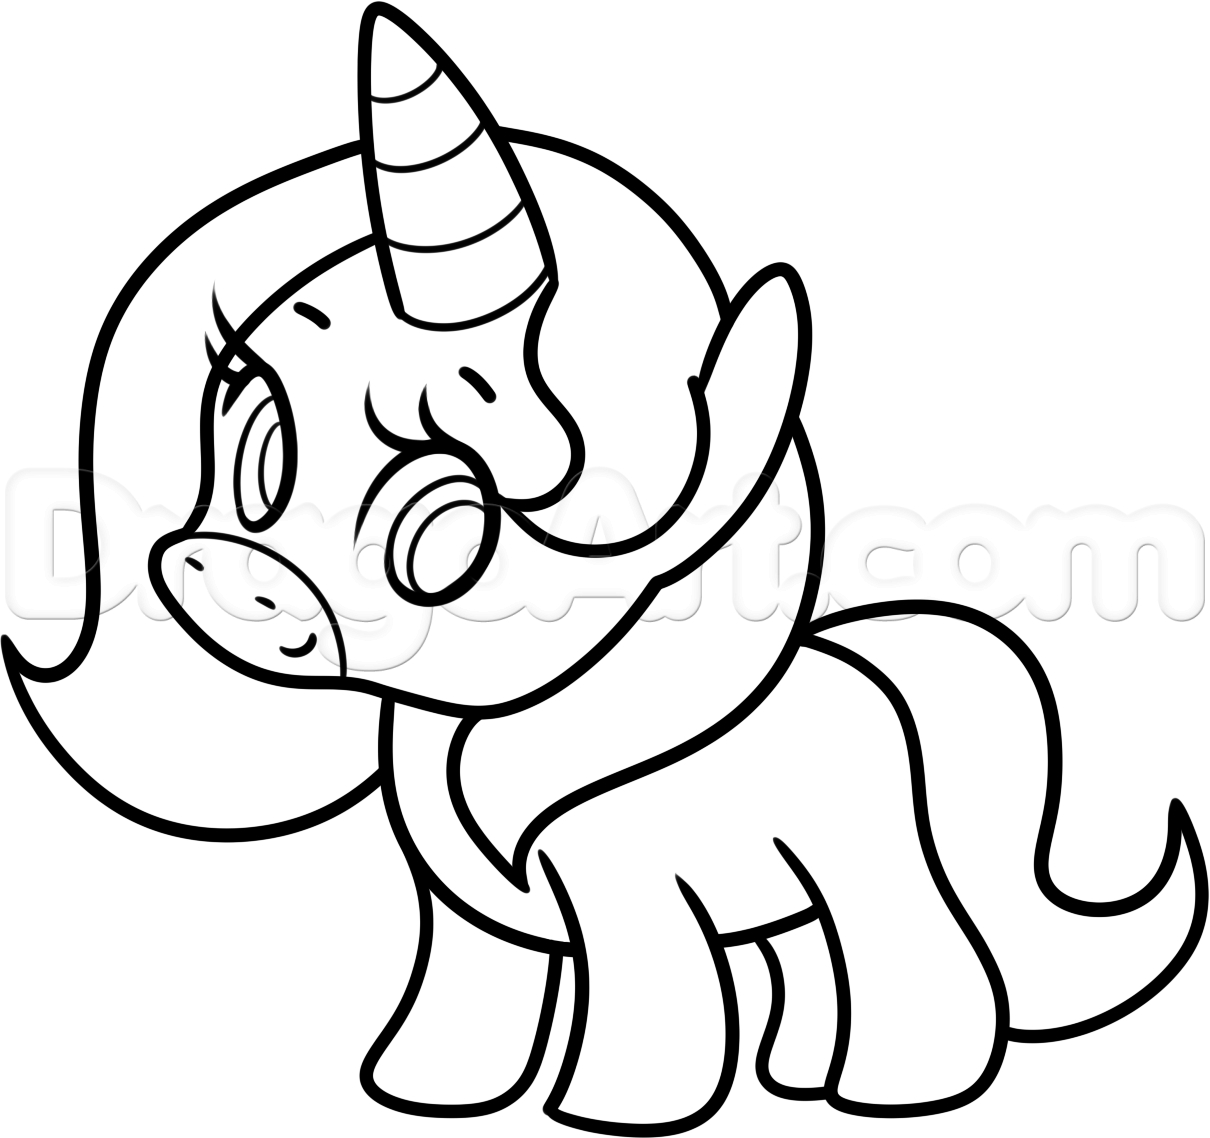 1210x1138 A Drawing Of A Unicorn How Draw Cute Cartoon Animals How